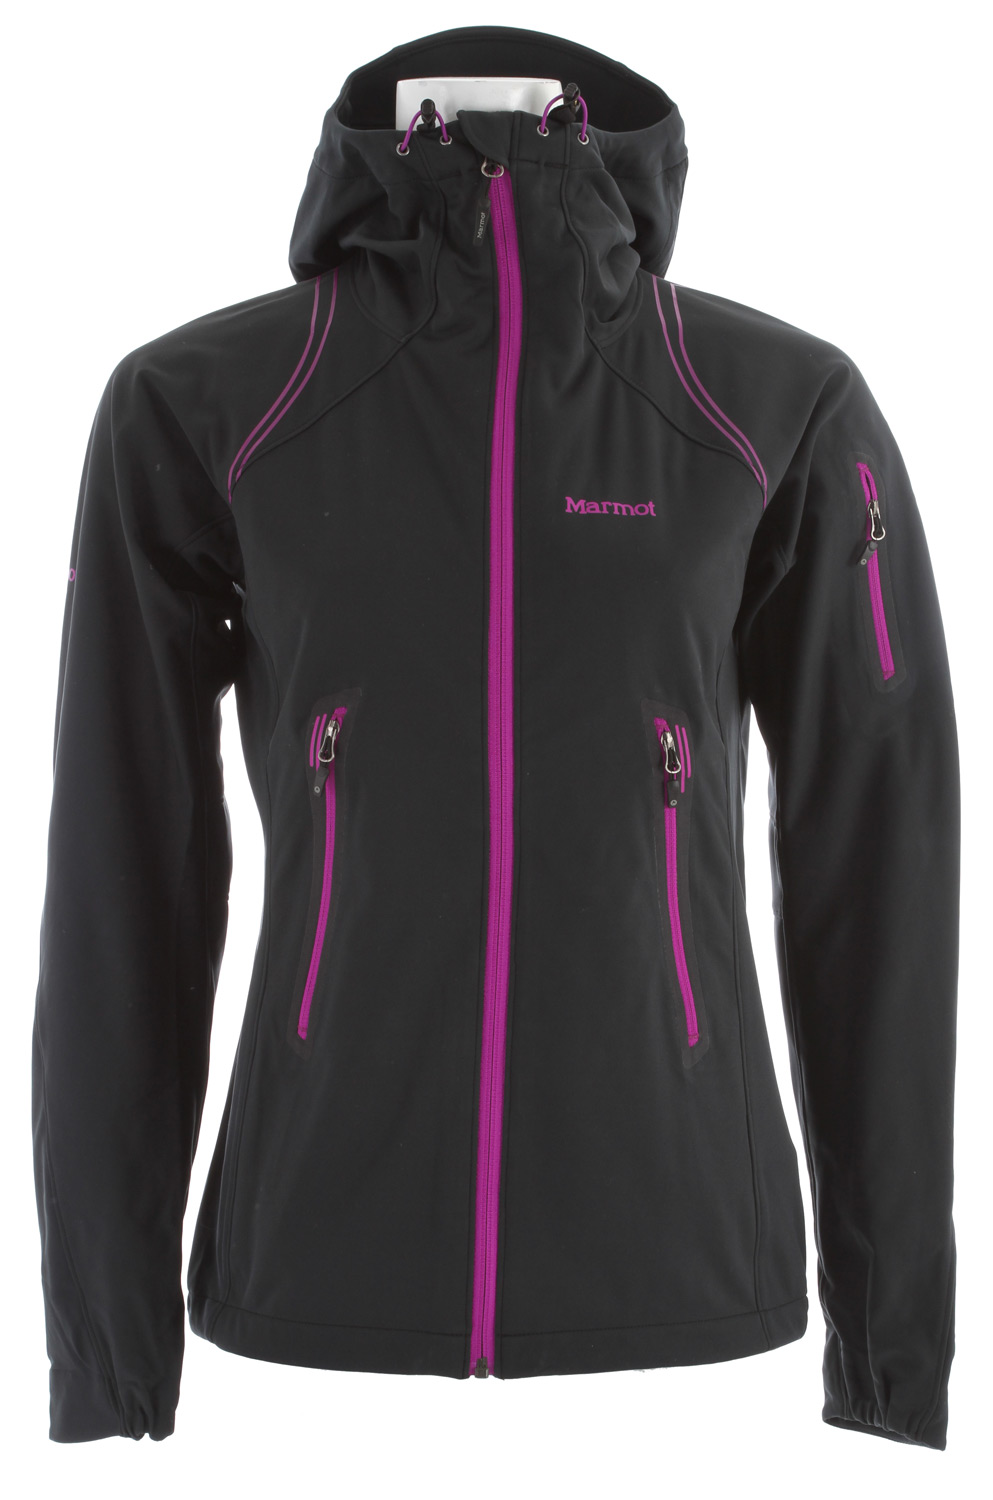 Key Features of the Marmot Vapor Trail Hoody Jacket: Weight 0lbs 14.5oz (411.1g) Materials Softshell WPB 100% Polyester Stretch 4.4oz/yd Softshell Bonded 100% Polyester Stretch 3.8 oz/yd Center Back Length 27.25in Athletic Fit Marmot M2 Softshell Water Repellent and Breathable Attached Adjustable Hood Windproof Body and Sleeves Breathable Side Panels and Back Pack Pockets Zip Sleeve Pocket Asymmetric Cuffs Internal Zippered Media Pocket Elastic Draw Cord Hem Angel-Wing Movement - $105.95